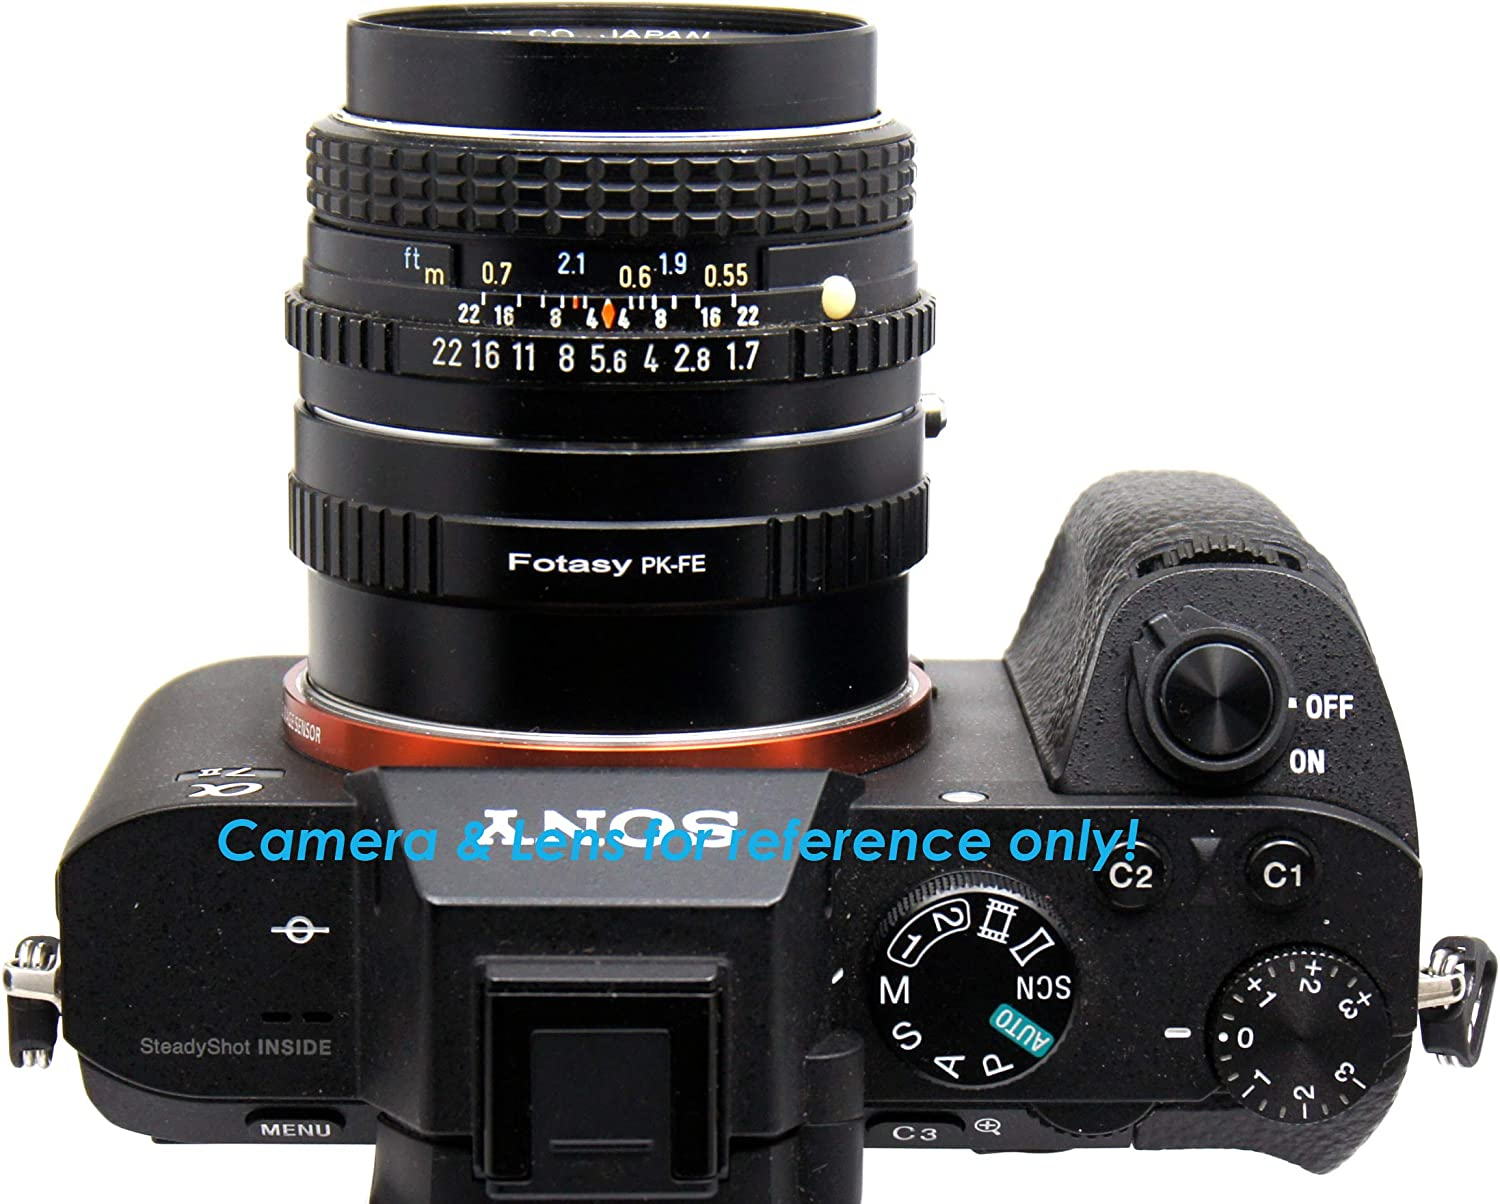 42mm Screw Mount Lens to E Mount Fotasy Copper Adjustable M42 Lens to Sony FE Adapter fits Sony a7 a7 II a7 III a7R a7R II a7R III a7S a7S II a7S III a9 a7R IV a6600 a6500 a6400 a6300 a6100 a6000